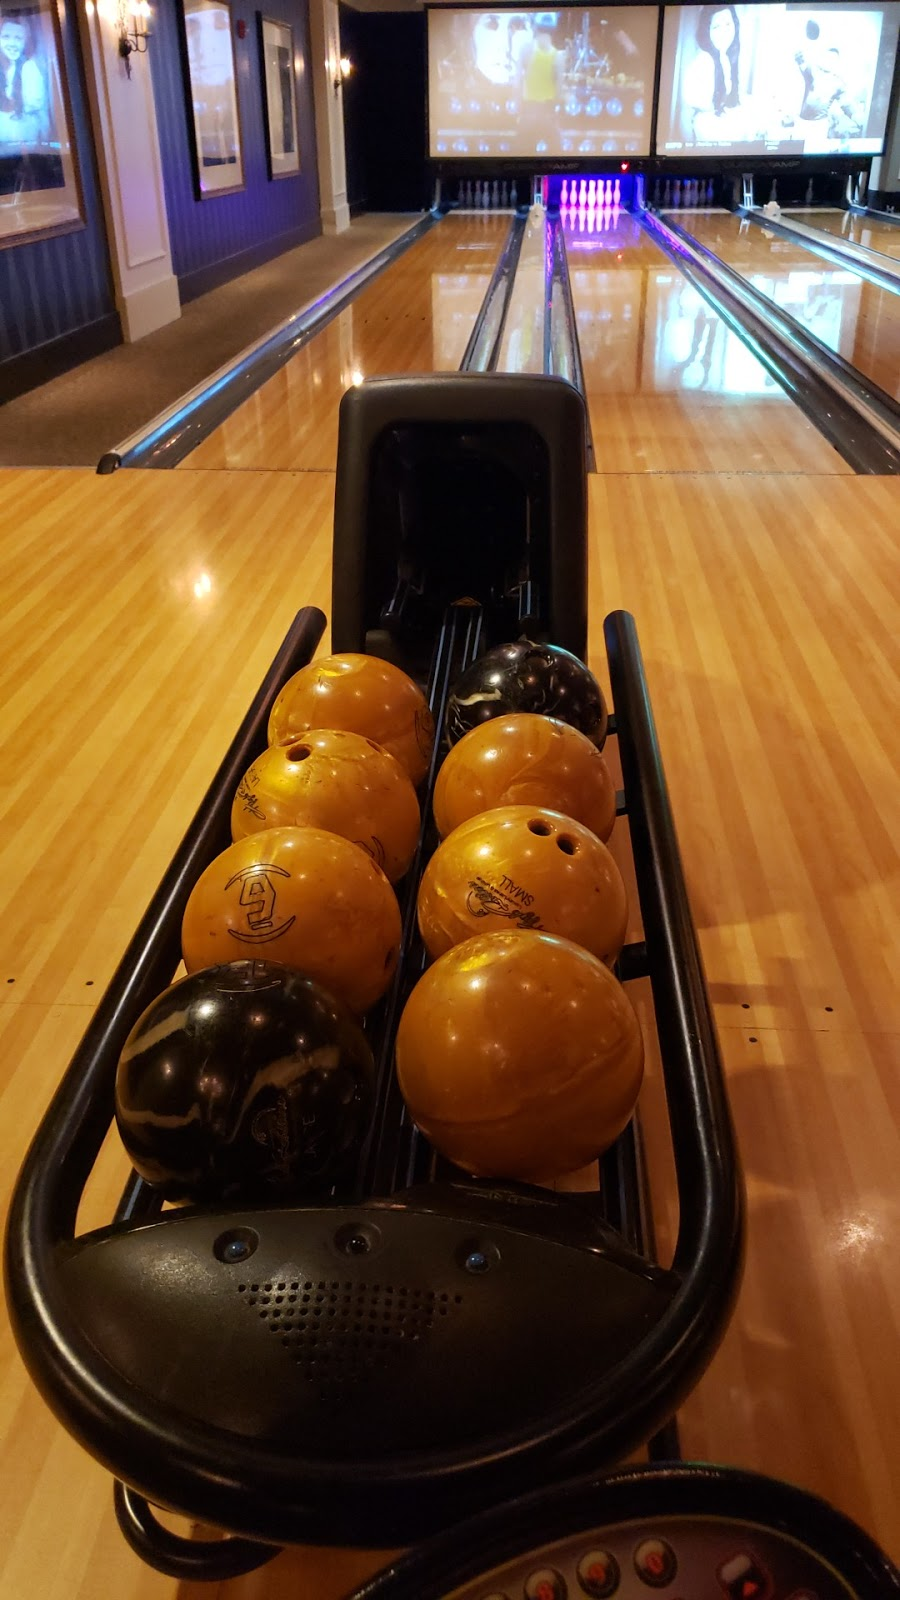 High Rollers Luxury Lanes & Sports Lounge - bowling alley  | Photo 4 of 10 | Address: 350 Trolley Line Blvd, MASHANTUCKET, CT 06338, USA | Phone: (860) 312-2695